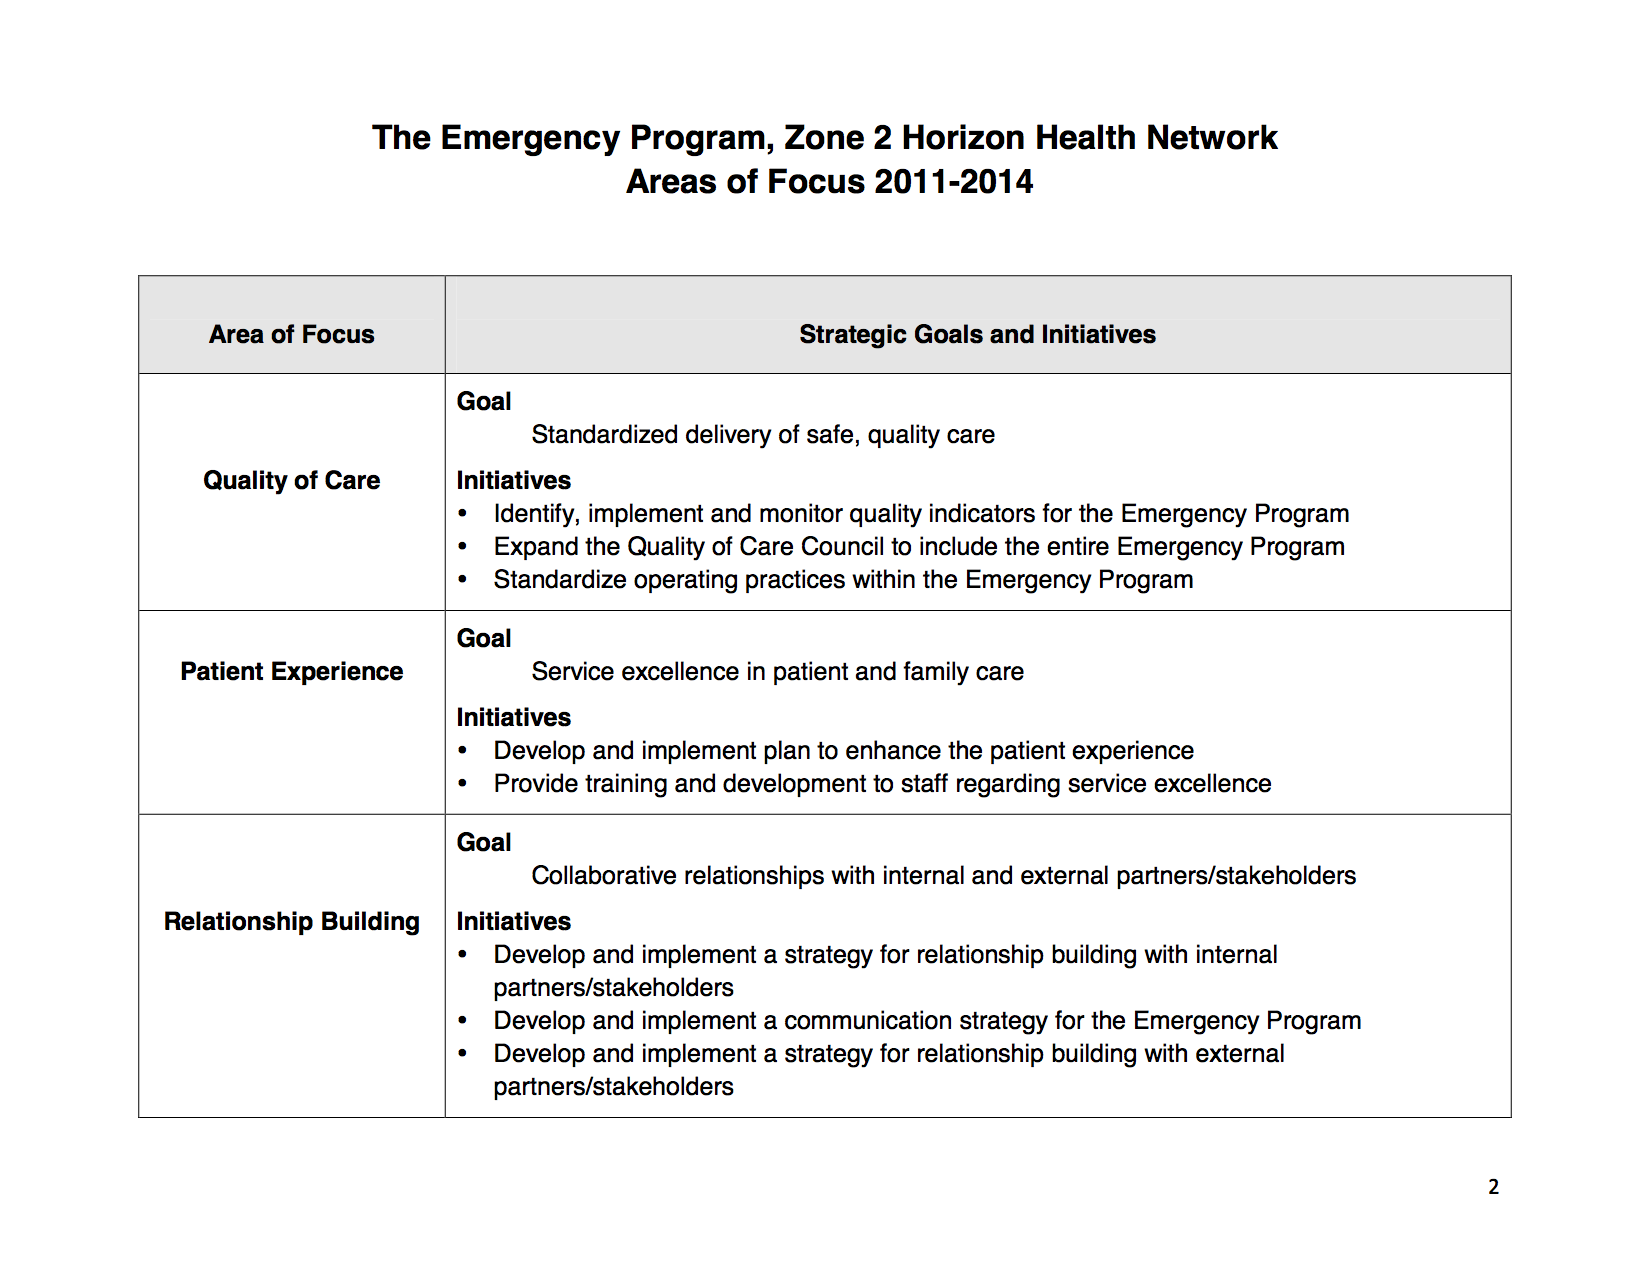 Strategic Plan Emergency Program Horizon Zone 2 2011-14 Summary b